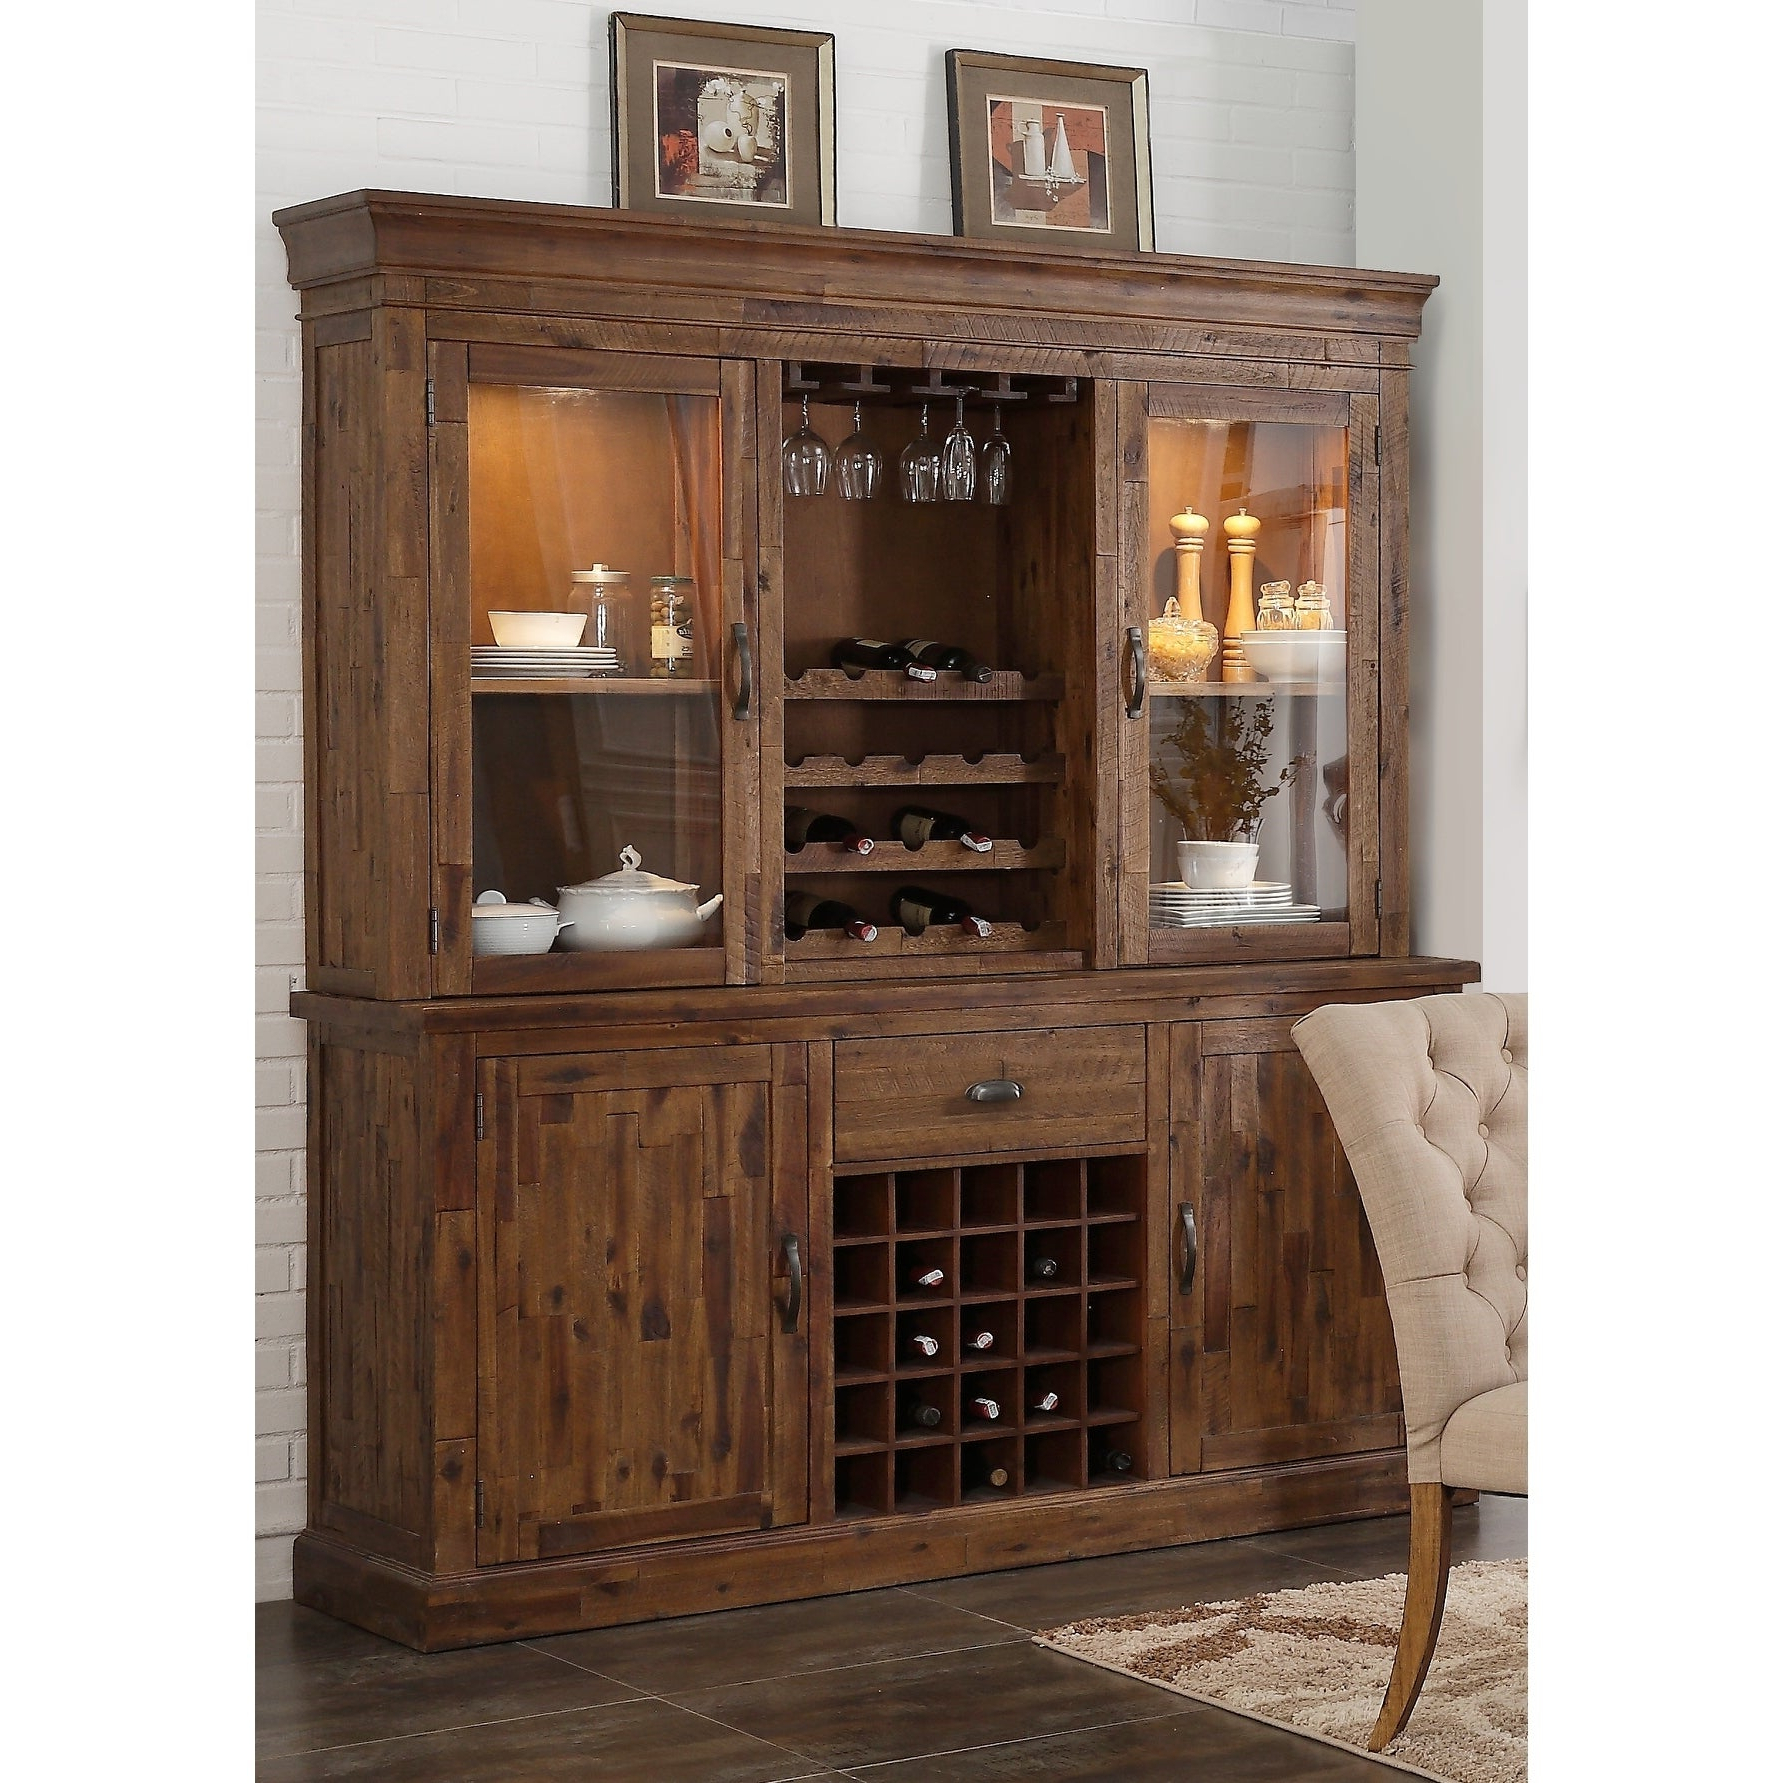 Buy Acacia Buffets, Sideboards & China Cabinets Online At Within Rustic Walnut Buffets (View 6 of 20)